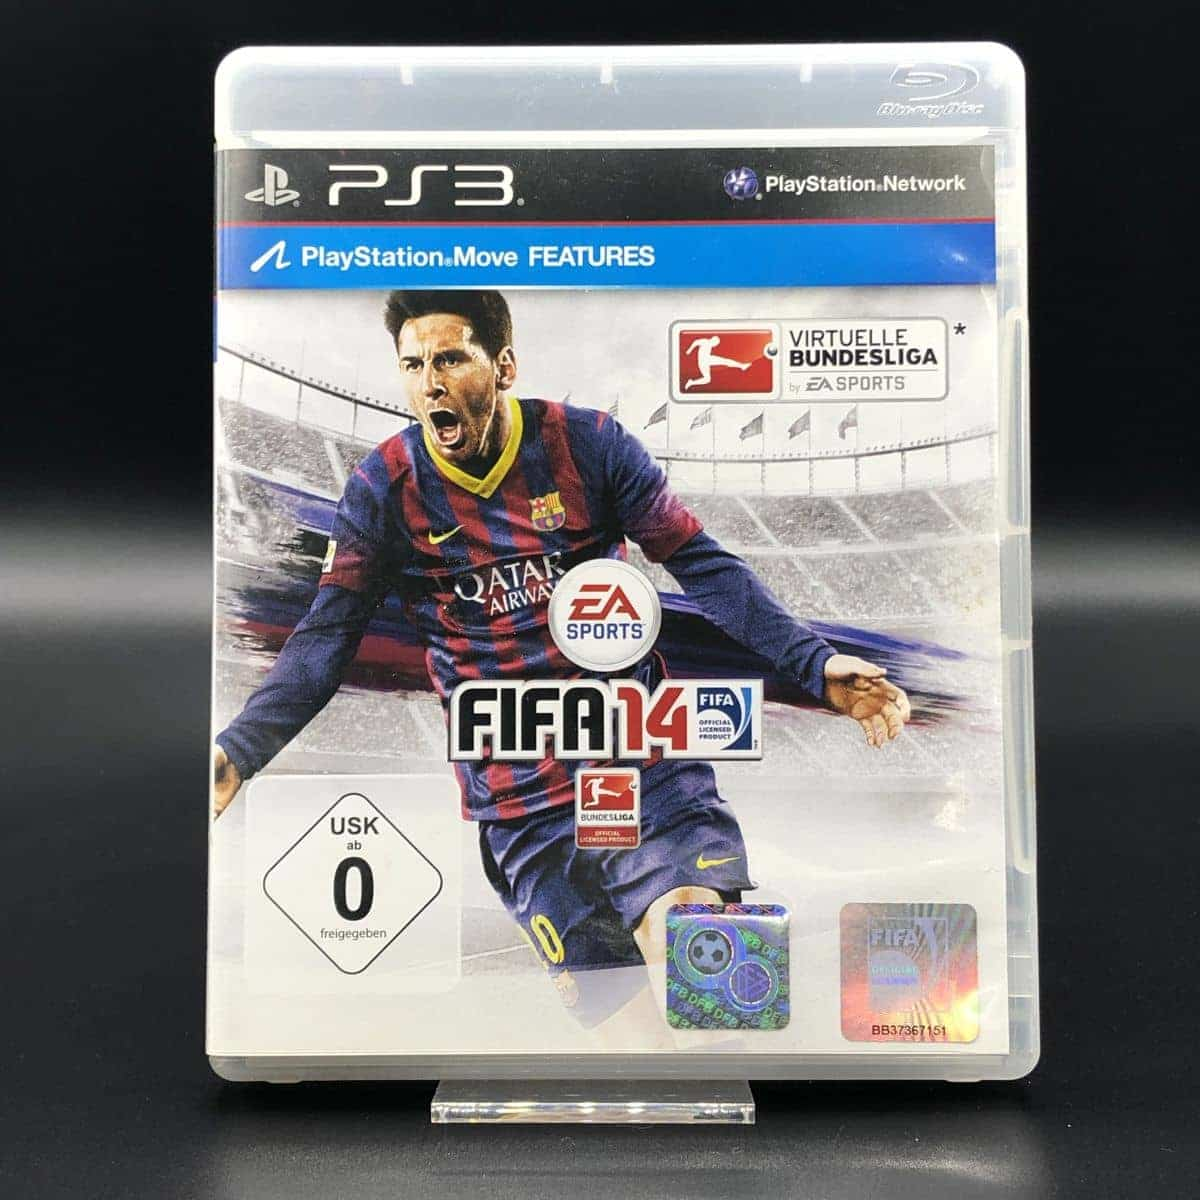 PS3 FIFA 14 (ohne Anleitung) (Sehr gut) Sony PlayStation 3